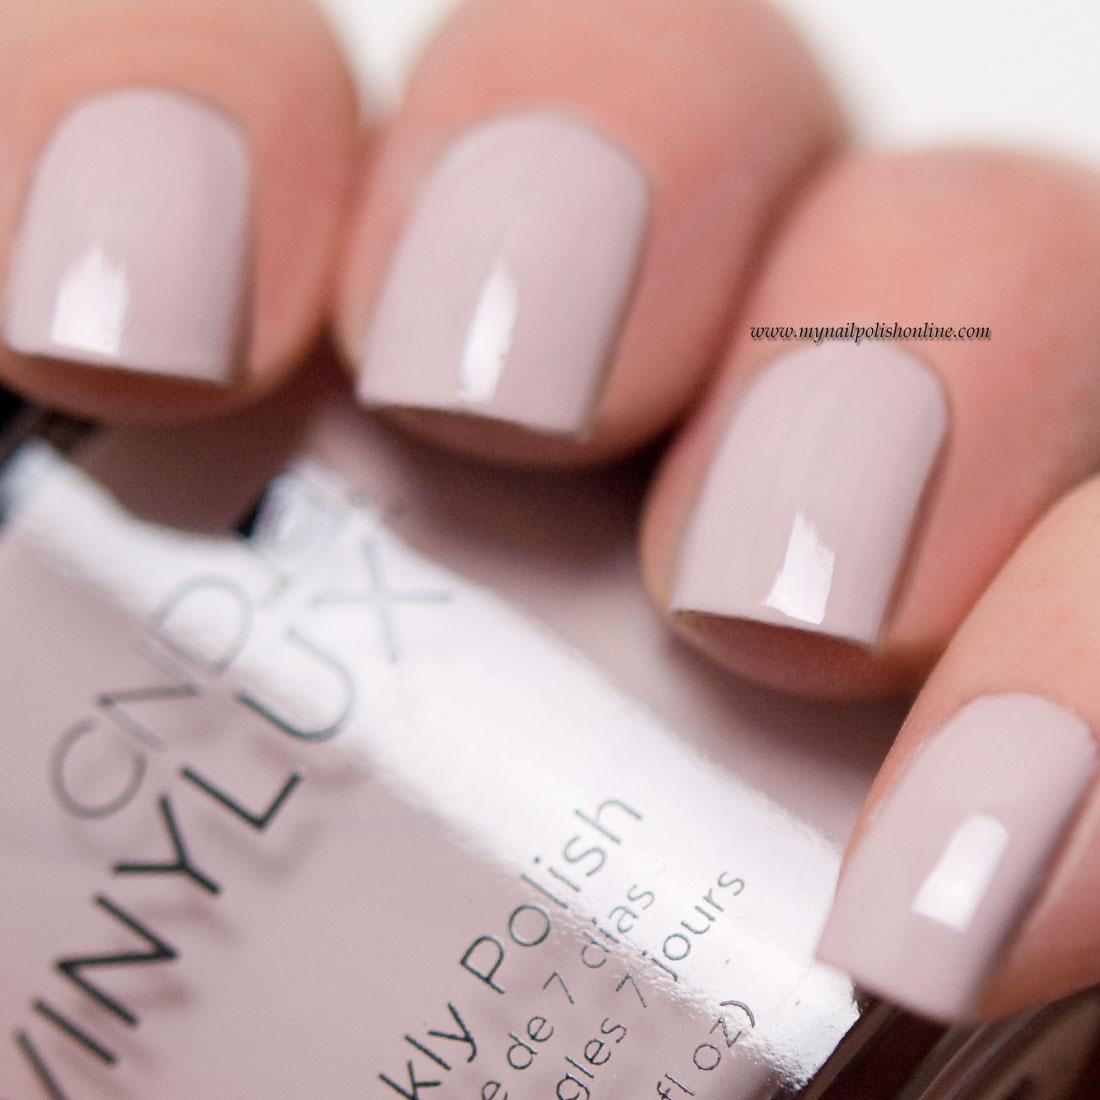 CND Vinylux Unlocked from the Nude collection